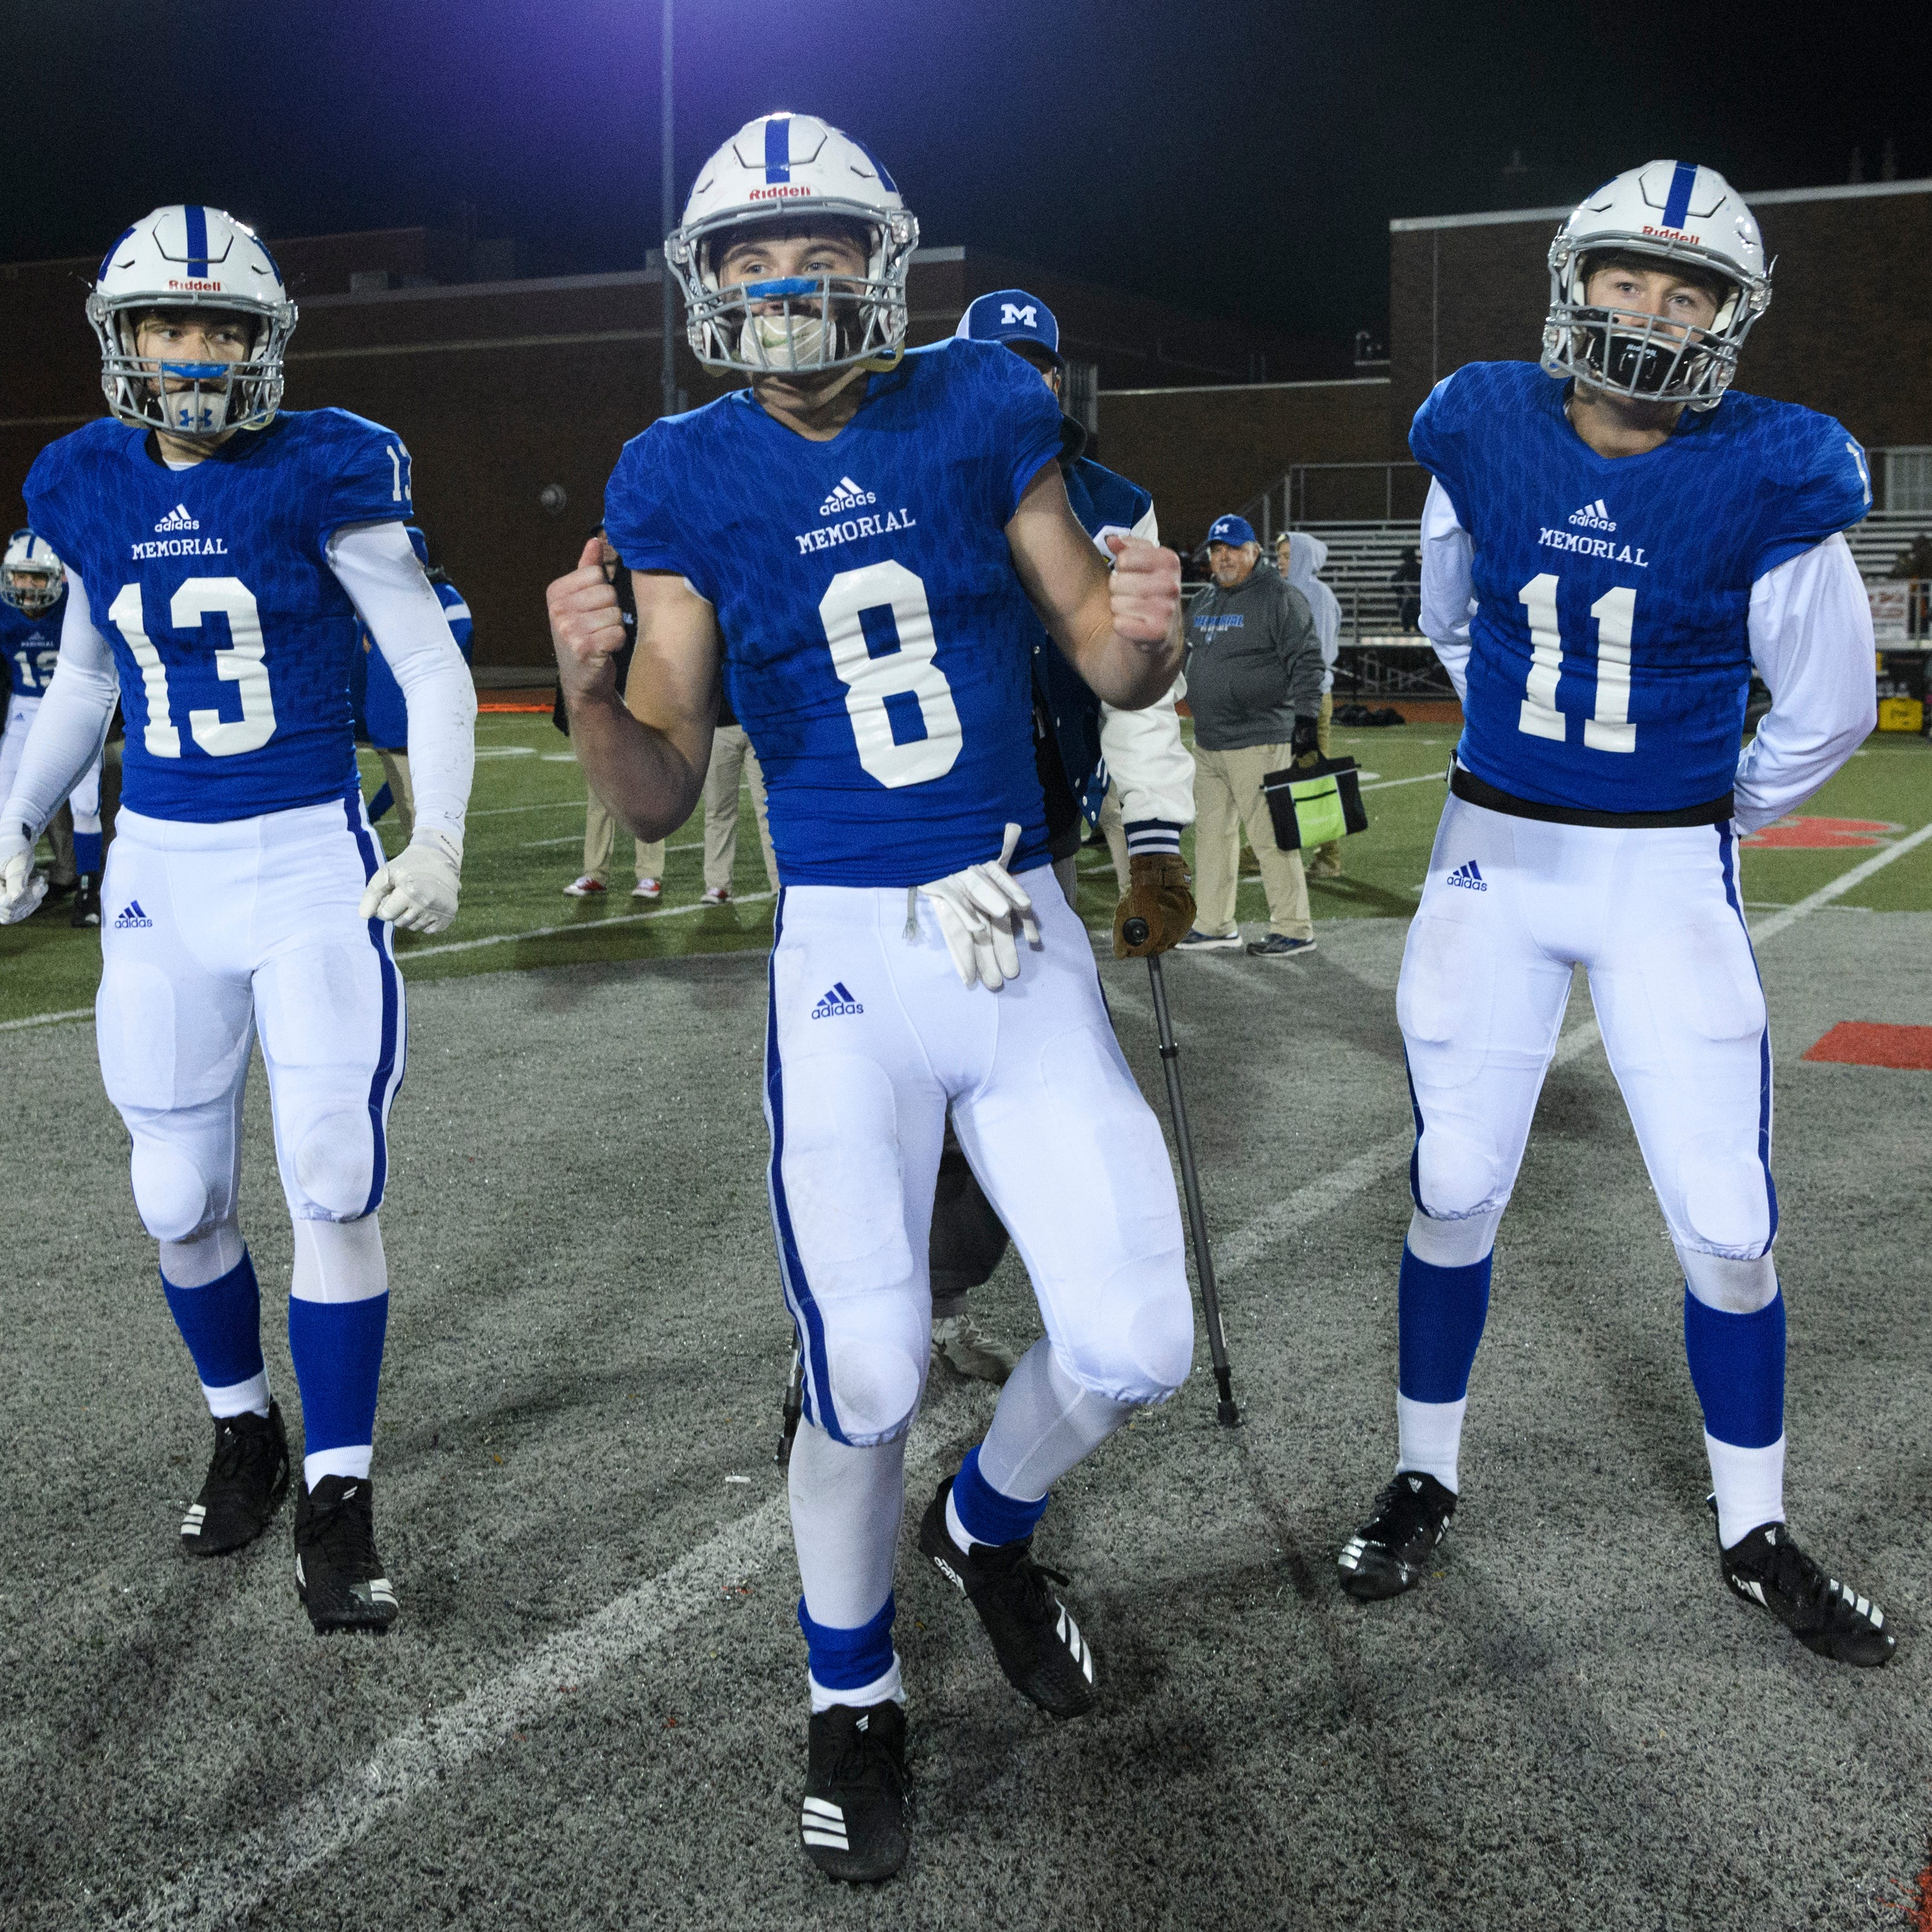 Memorial vs Bishop Chatard: Keys to winning the Class 3A football semistate